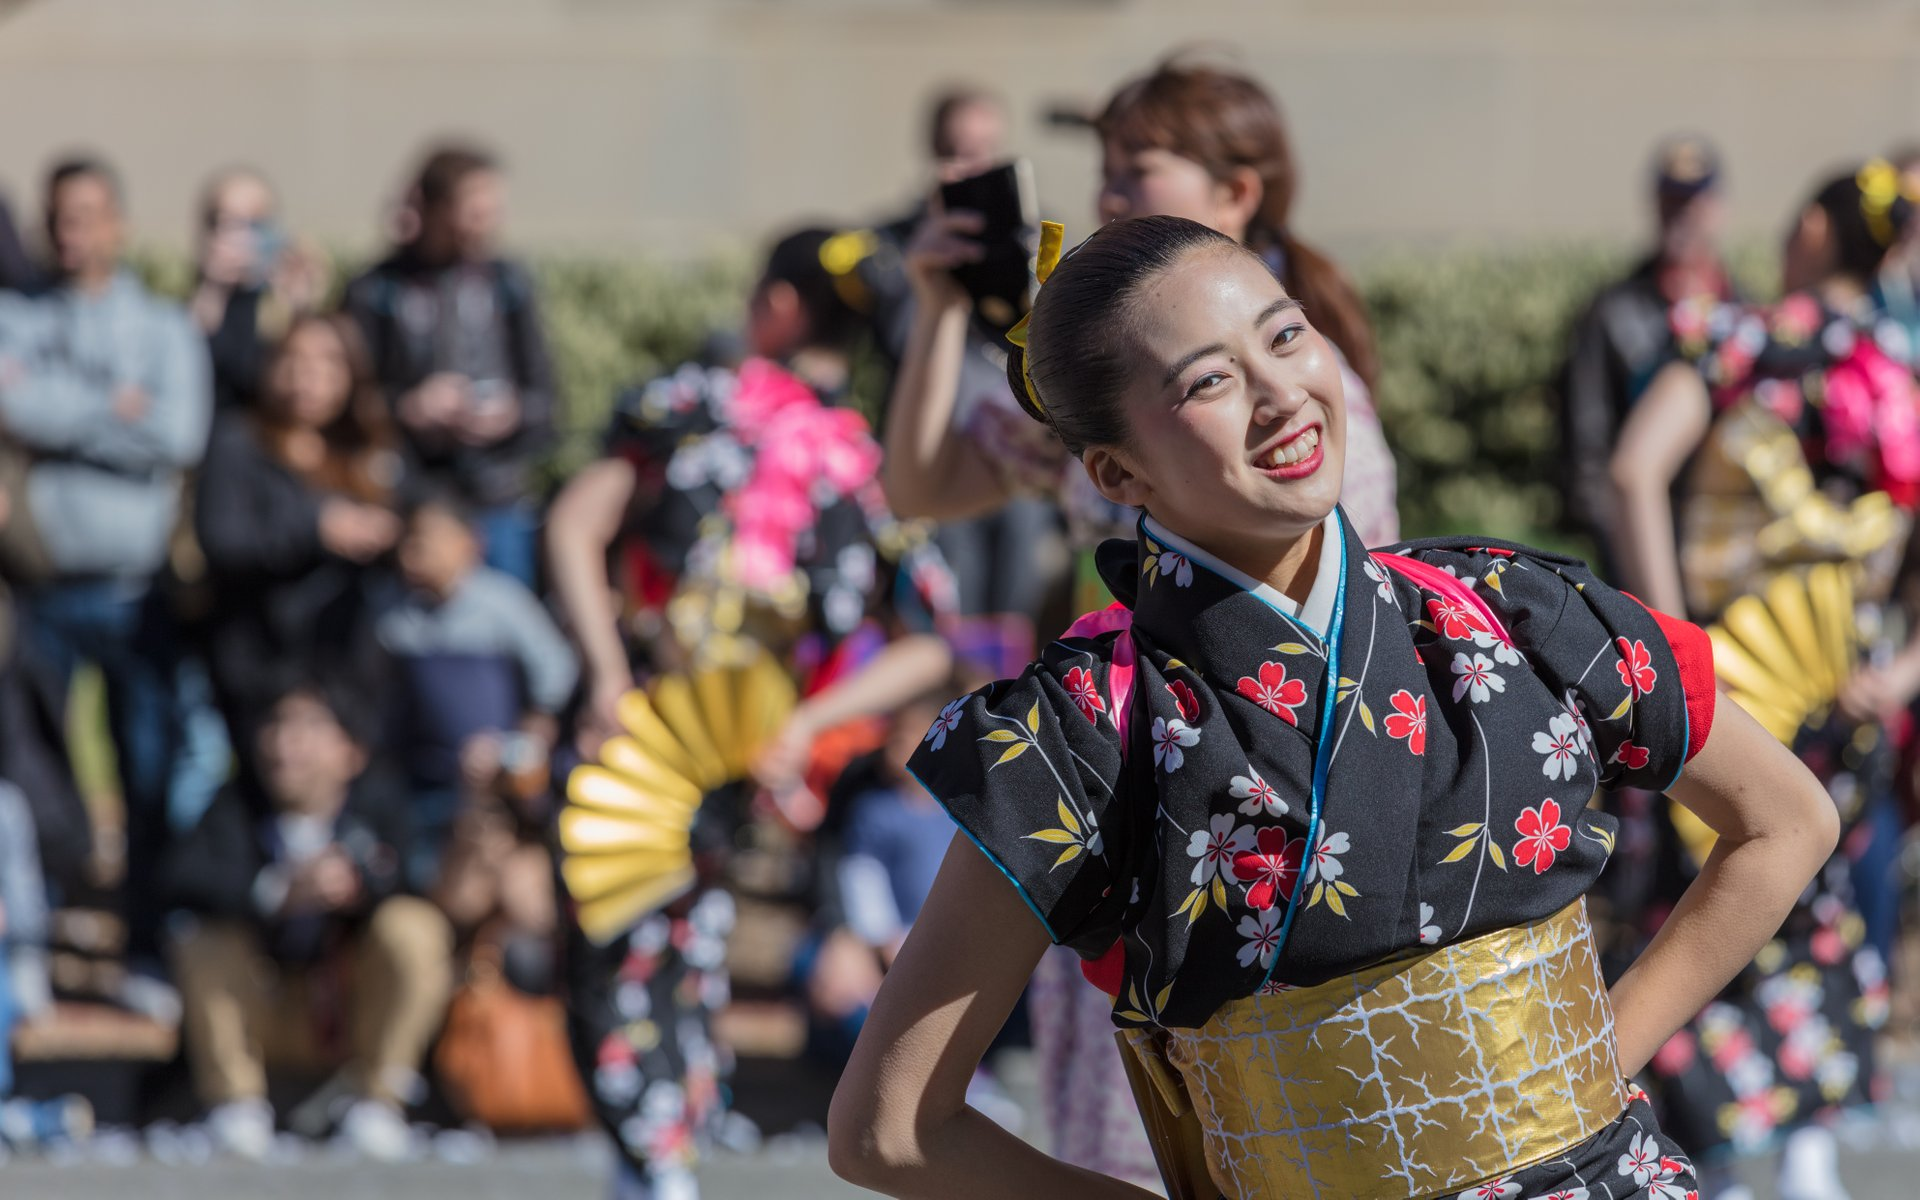 National Cherry Blossom Festival Parade 2020